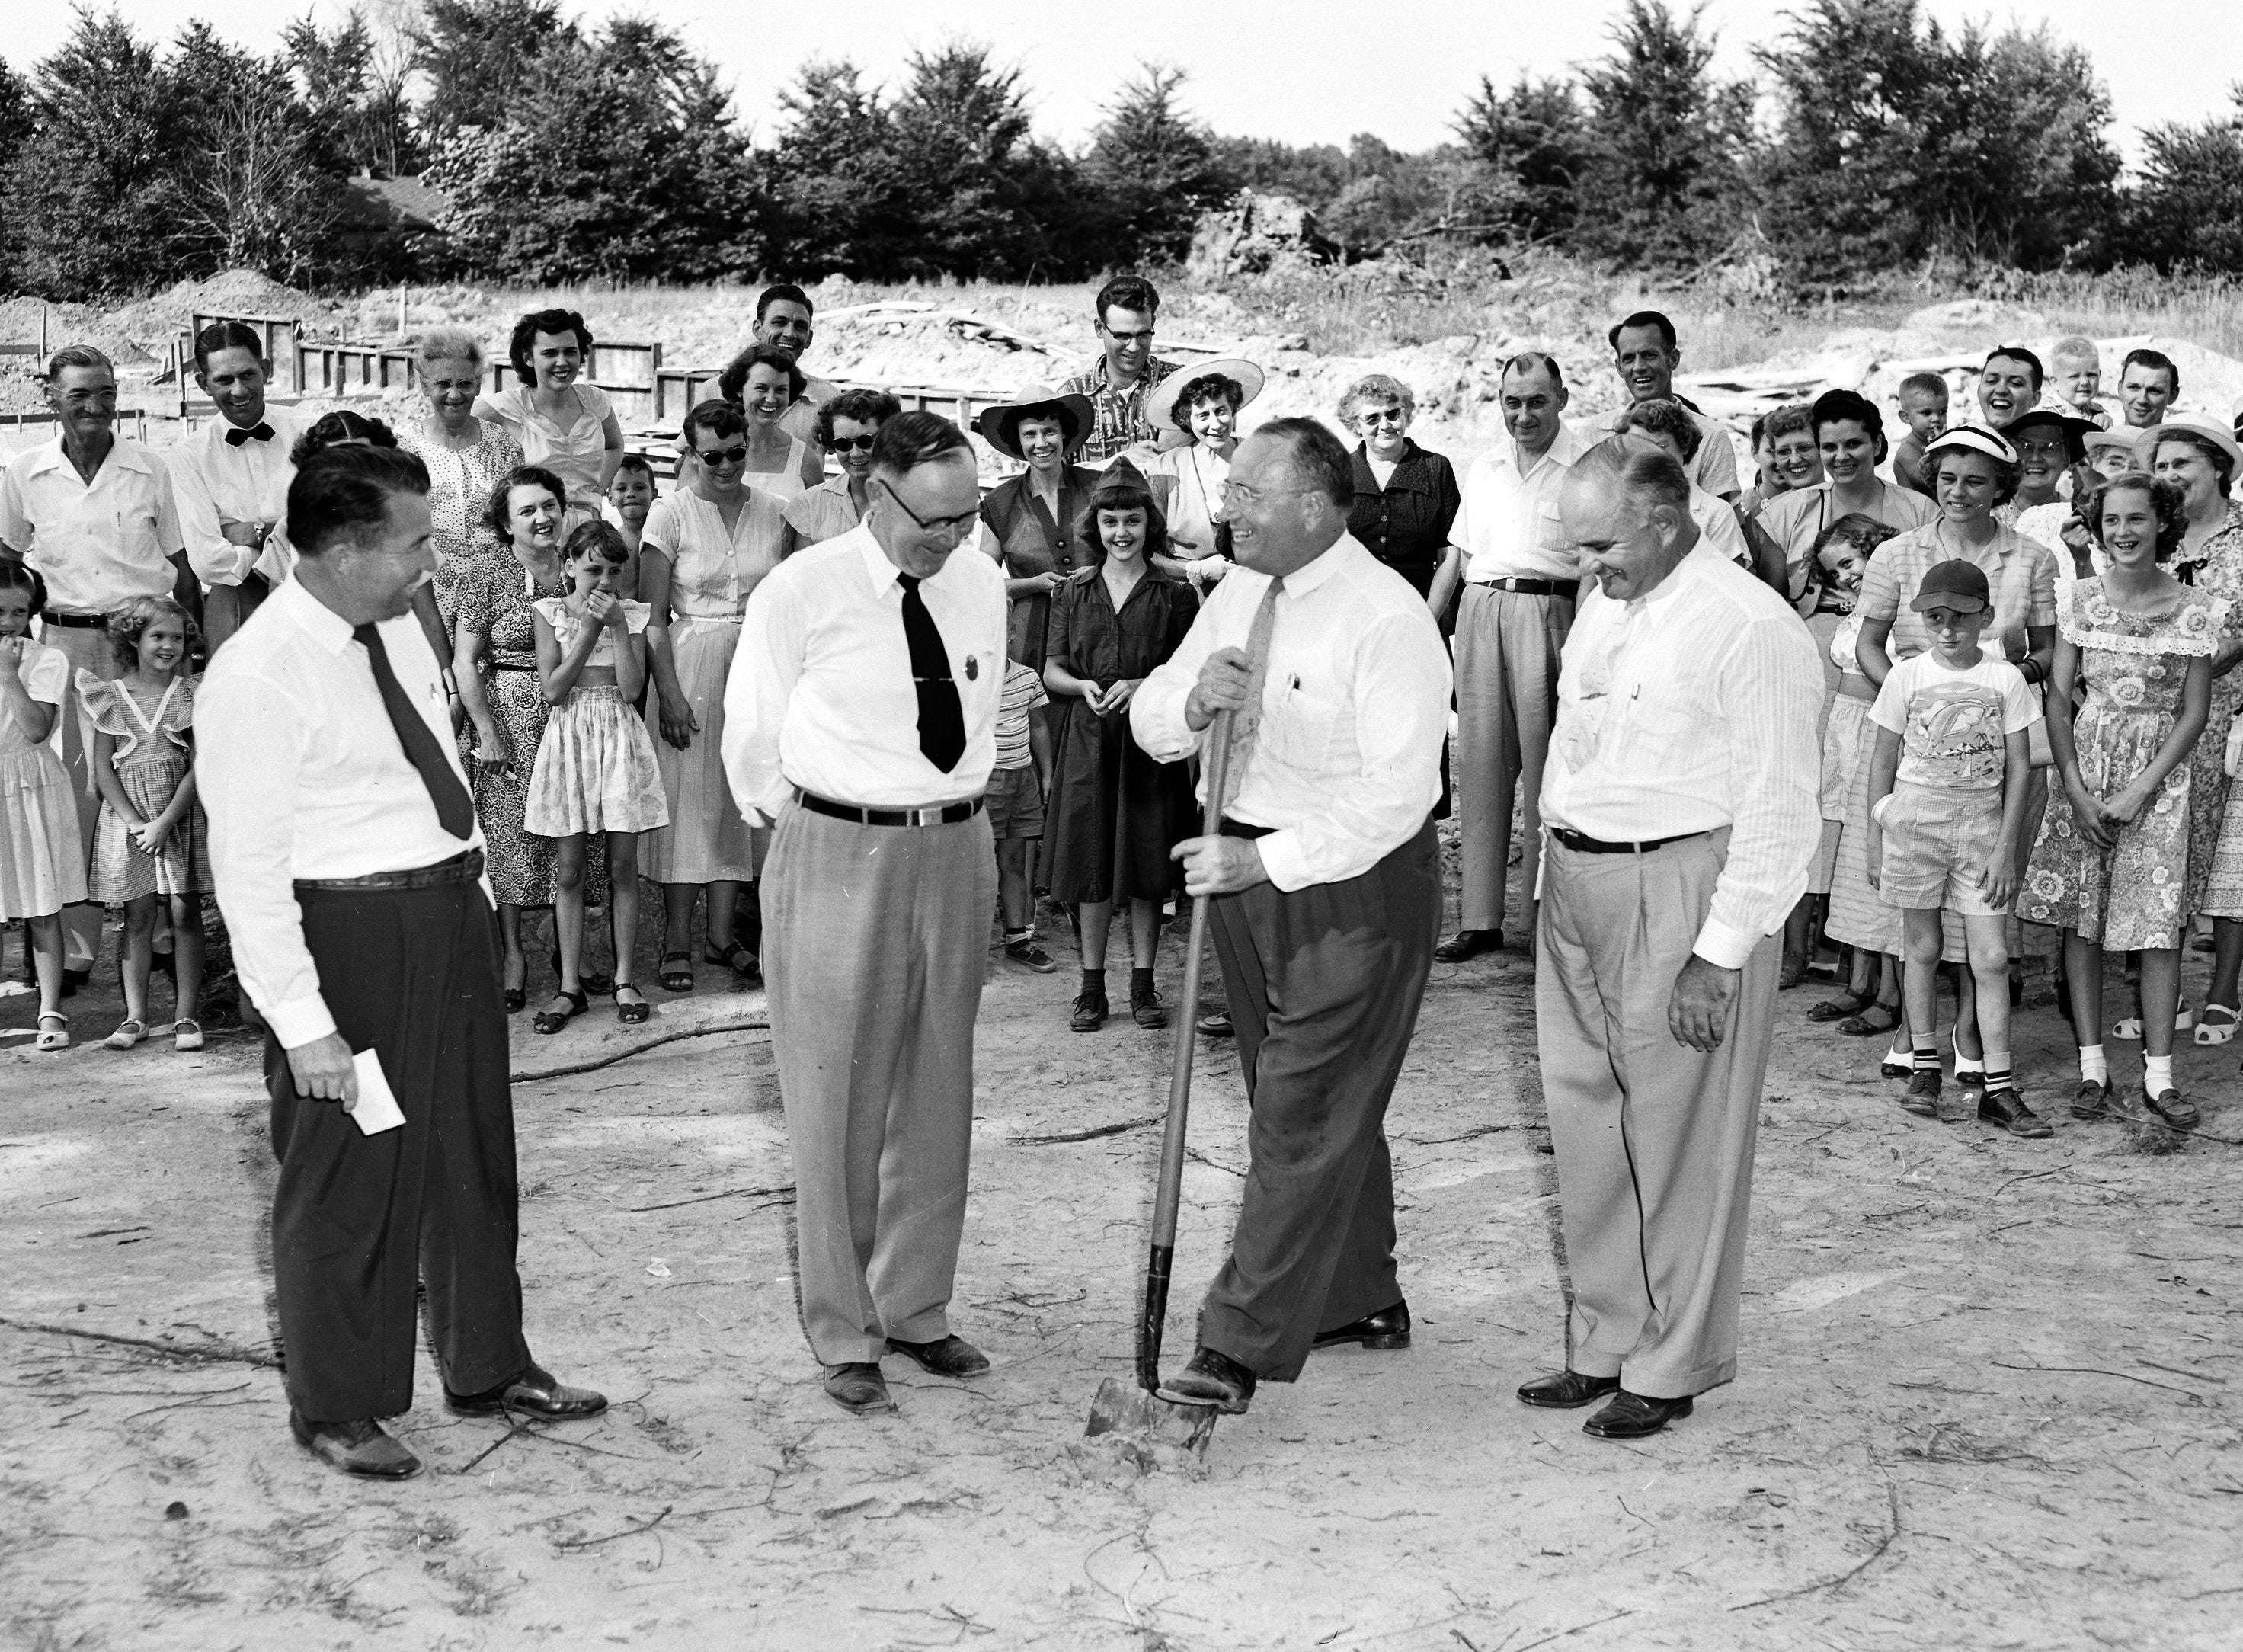 Future students were among the watchers as Seventh-Day Adventist leaders broke ground in July 1953 for the erection of a denominational Memphis Junior Academy on Mendenhall north of Walnut Grove. Making the dirt fly were (From Left) Teddrick Mohr of Nashville, educational secretary of the church's Kentucky-Tennessee Conference; Elder W.E. Strickland of Nashville, conference president; Elder E.E. Carman, pastor of First and Raleigh Seventh-Day congregations and Myron Harvey of Nashville, conference secretary-treasurer.